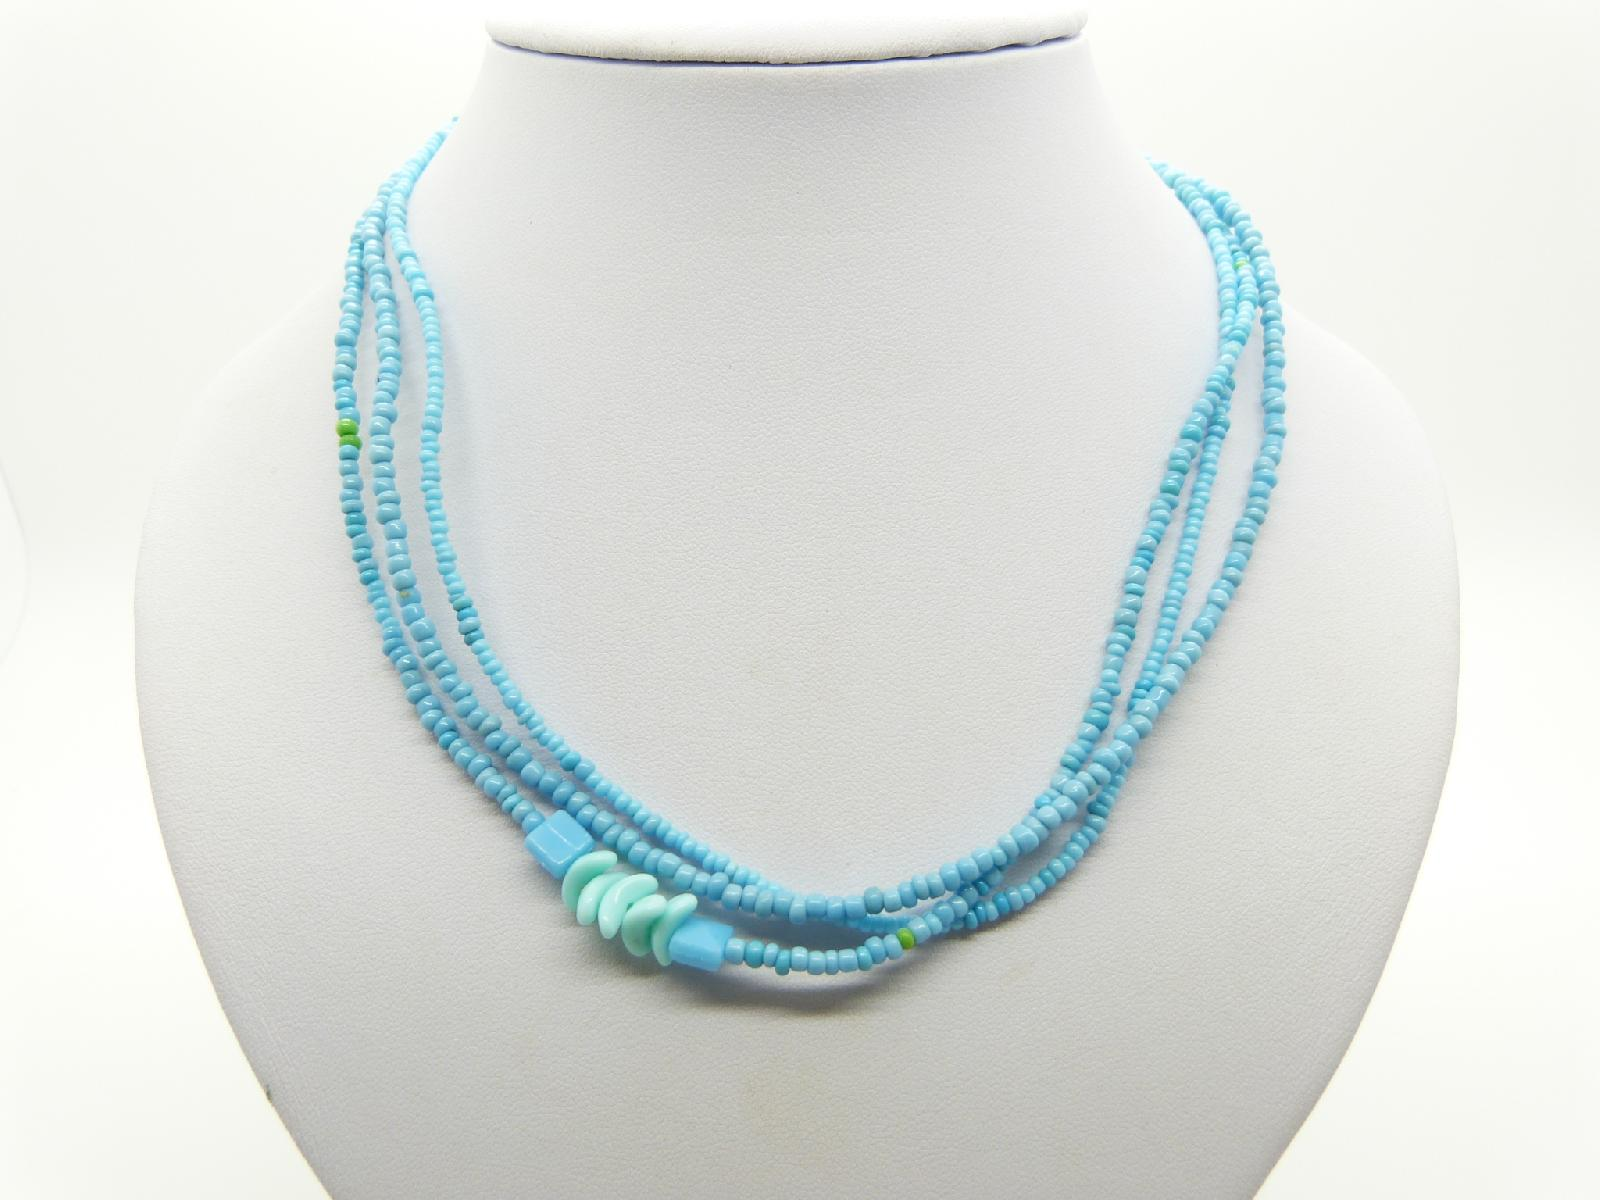 Vintage Redesigned 1950s Three Row Turquoise Blue Glass Seed Bead Necklace 48cms